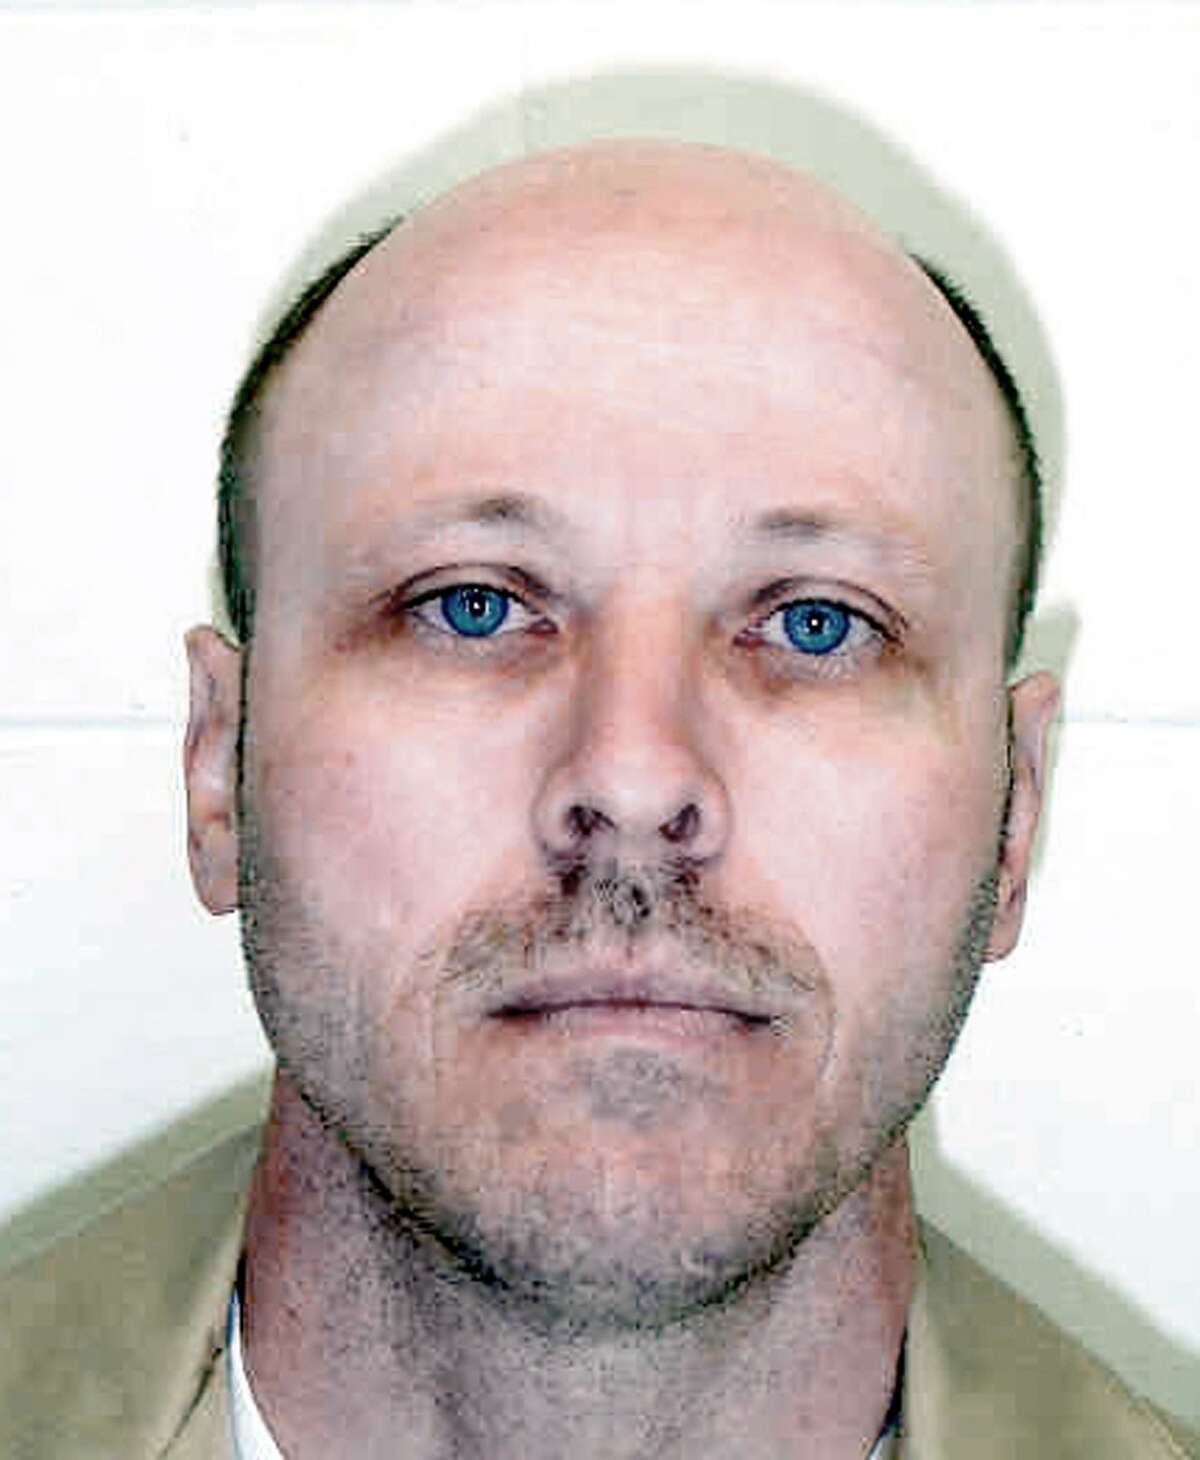 ** FILE ** This undated photo released by the Nebraska Dept. of Corrections shows Carey Dean Moore, who was executed. Nebraska became the first state to use the opioid fentanyl to kill a prisoner when Moore was executed in 2018. (AP Photo/Dept. of Corrections via The Lincoln Journal Star)